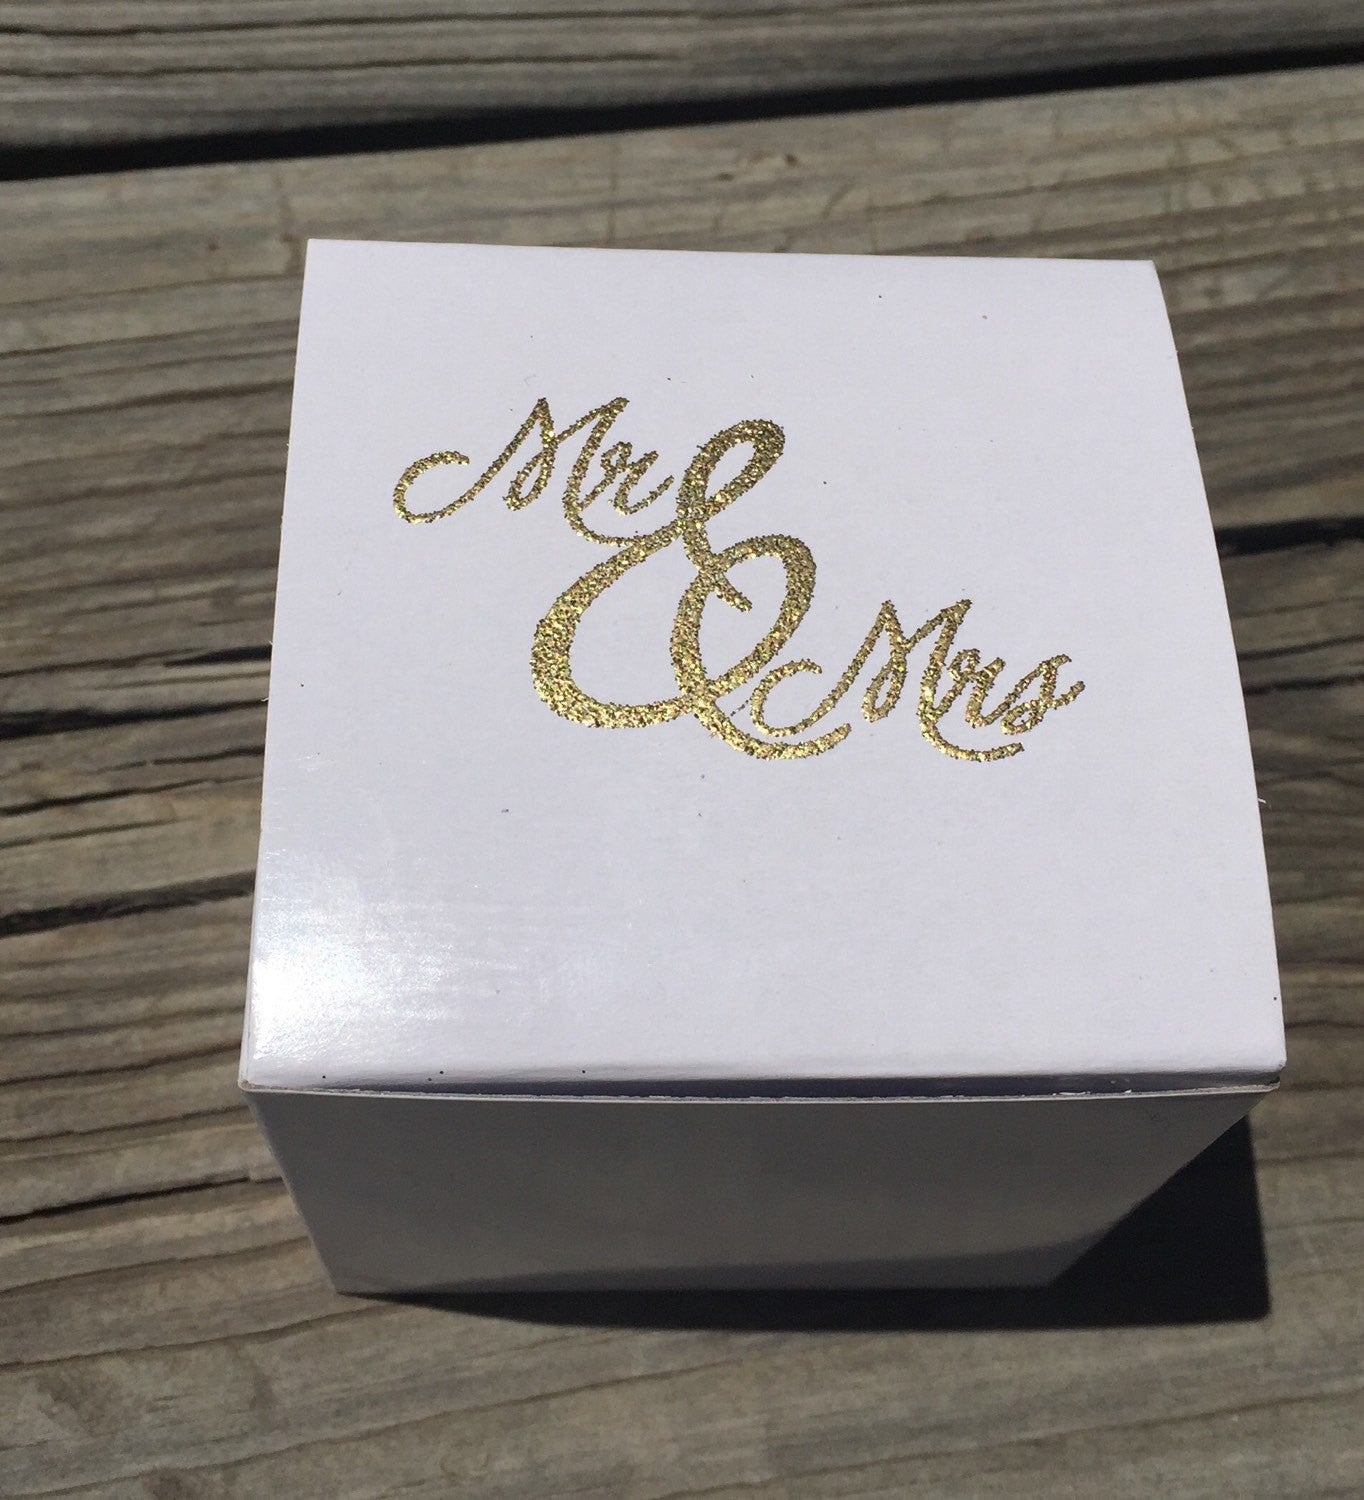 10 gold embossed cupcake boxes, Mr. & Mrs. Cupcake box, wedding favor box, gold and white favor box